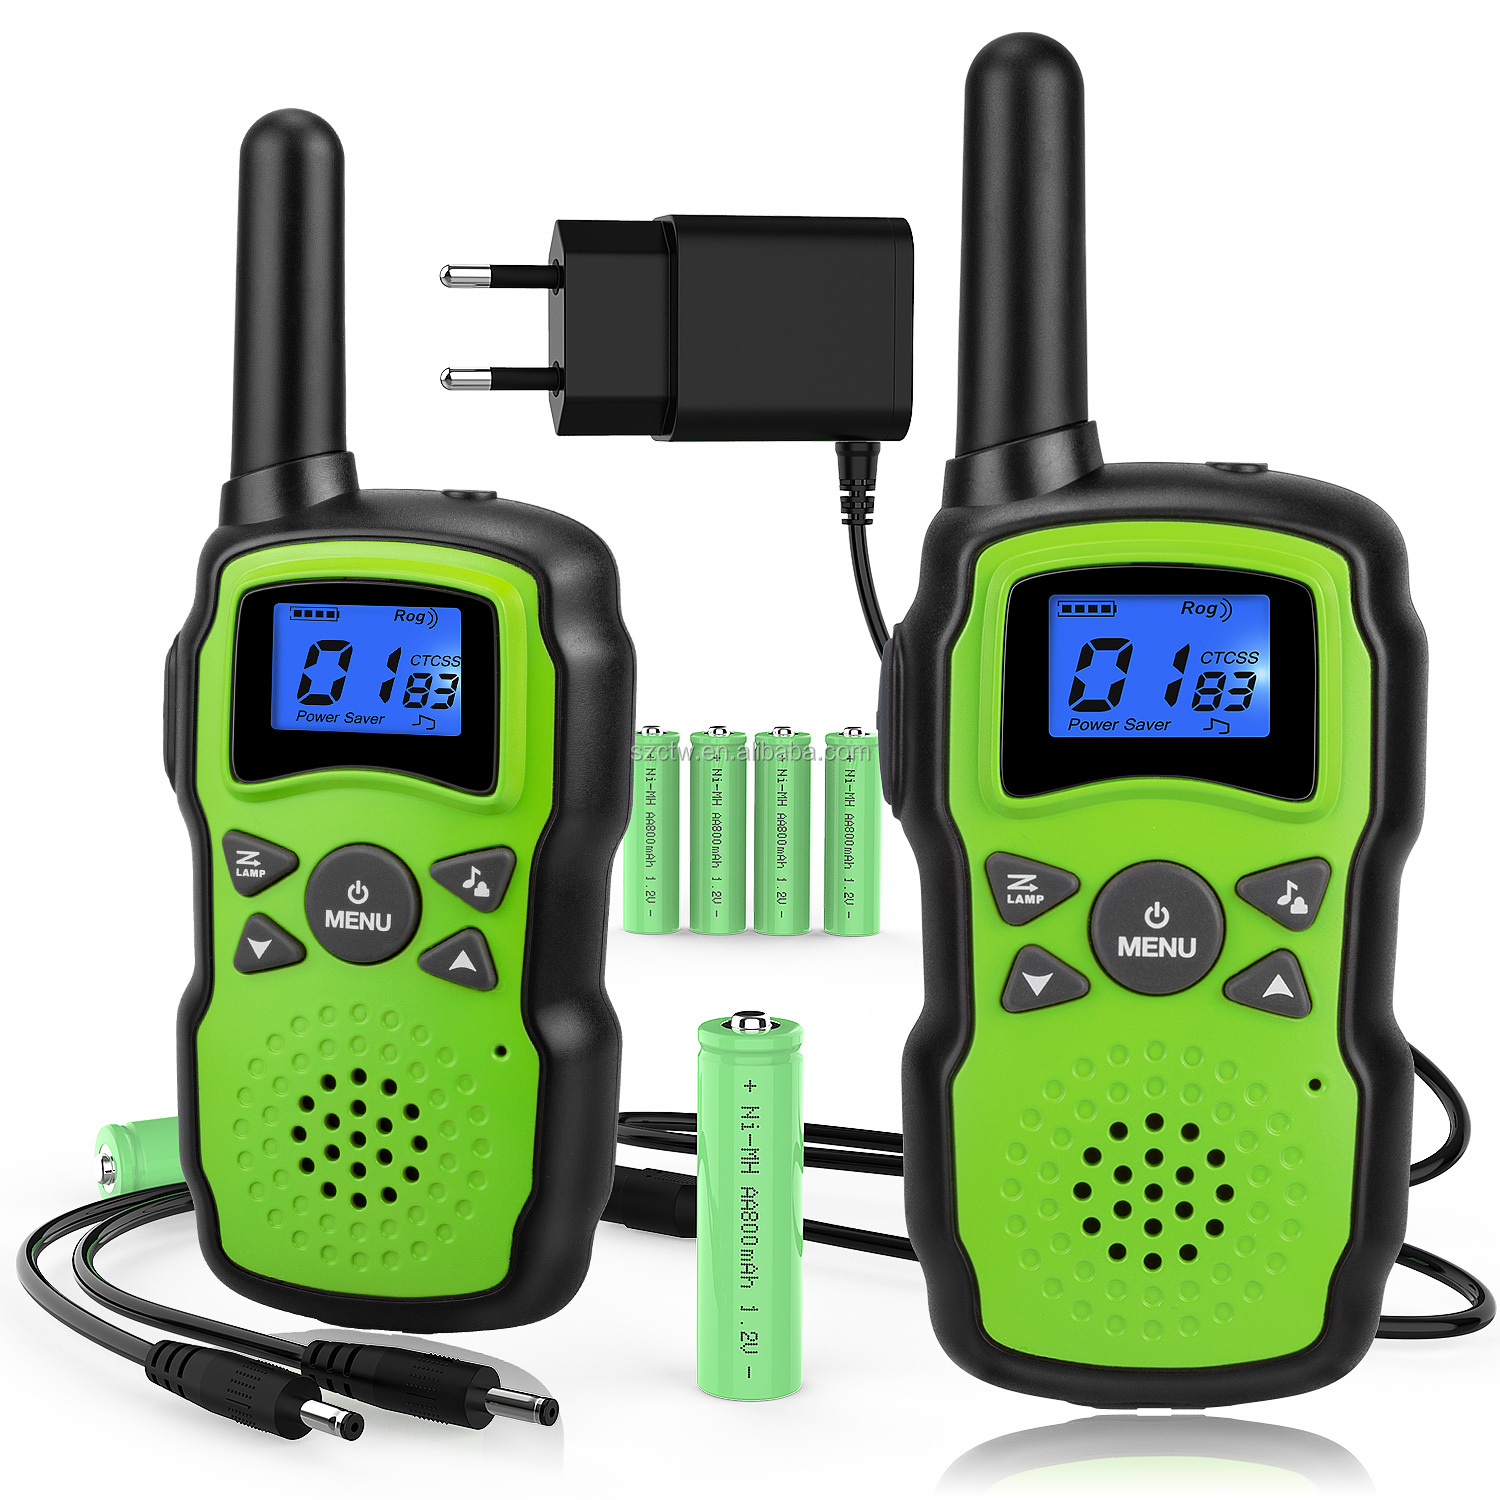 kids walkie talkie set for travel,camping,Best gift toy walkie talkies, Walmart, supermarket wholesale new model